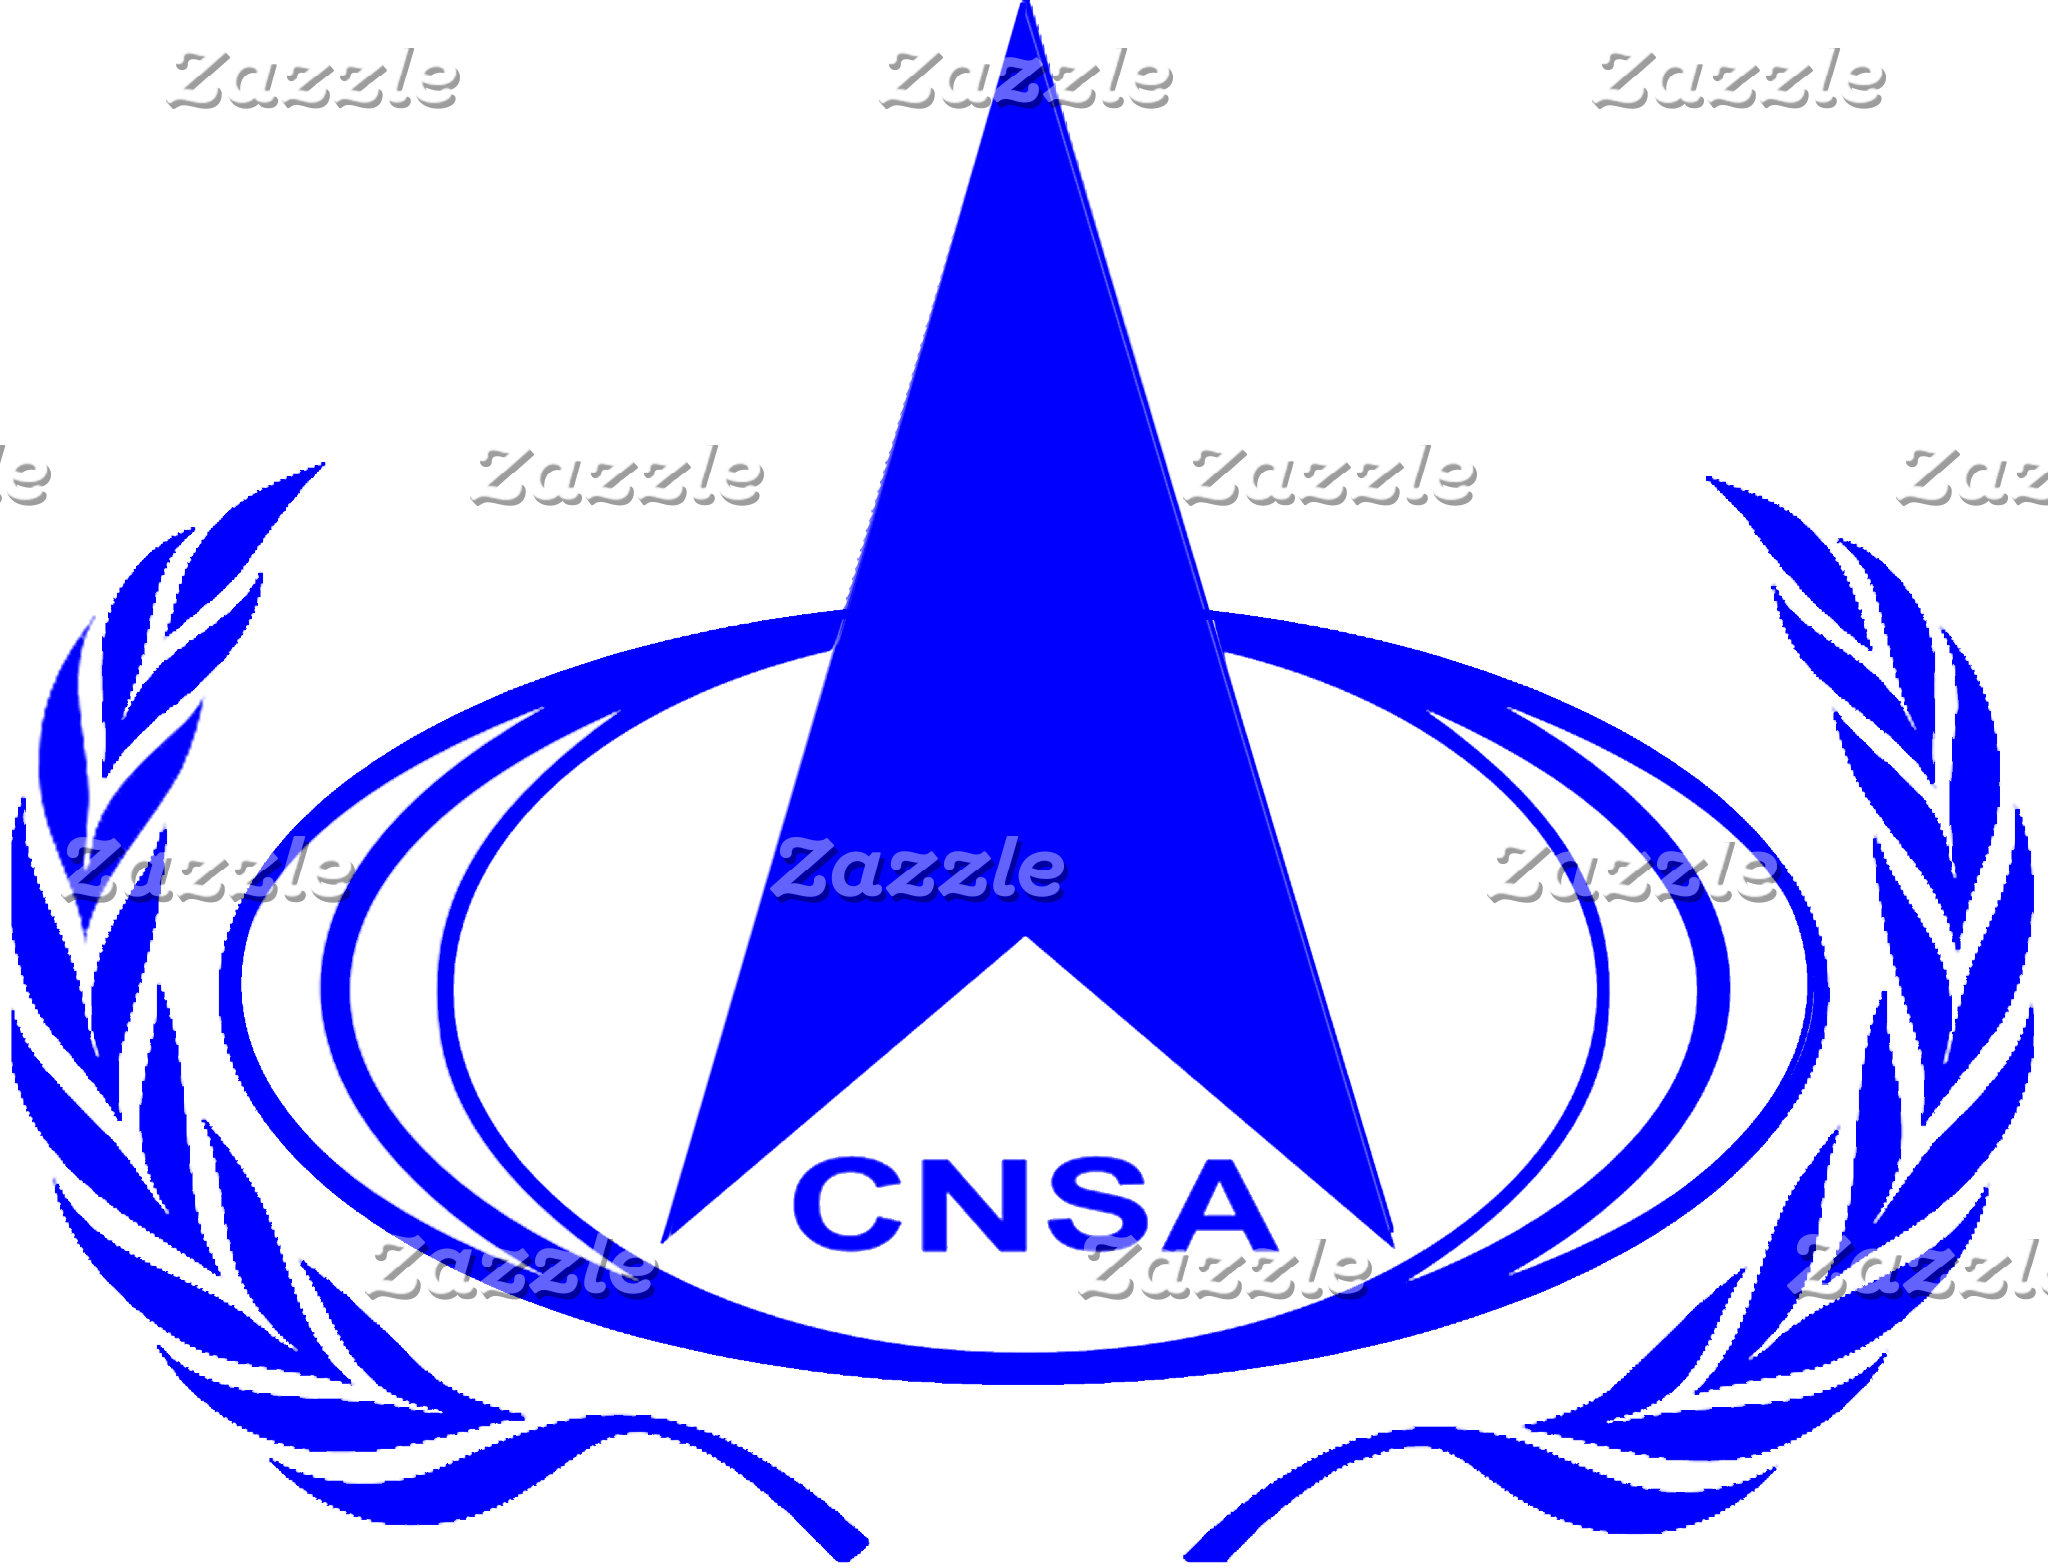 CNSA - China National Space Administration